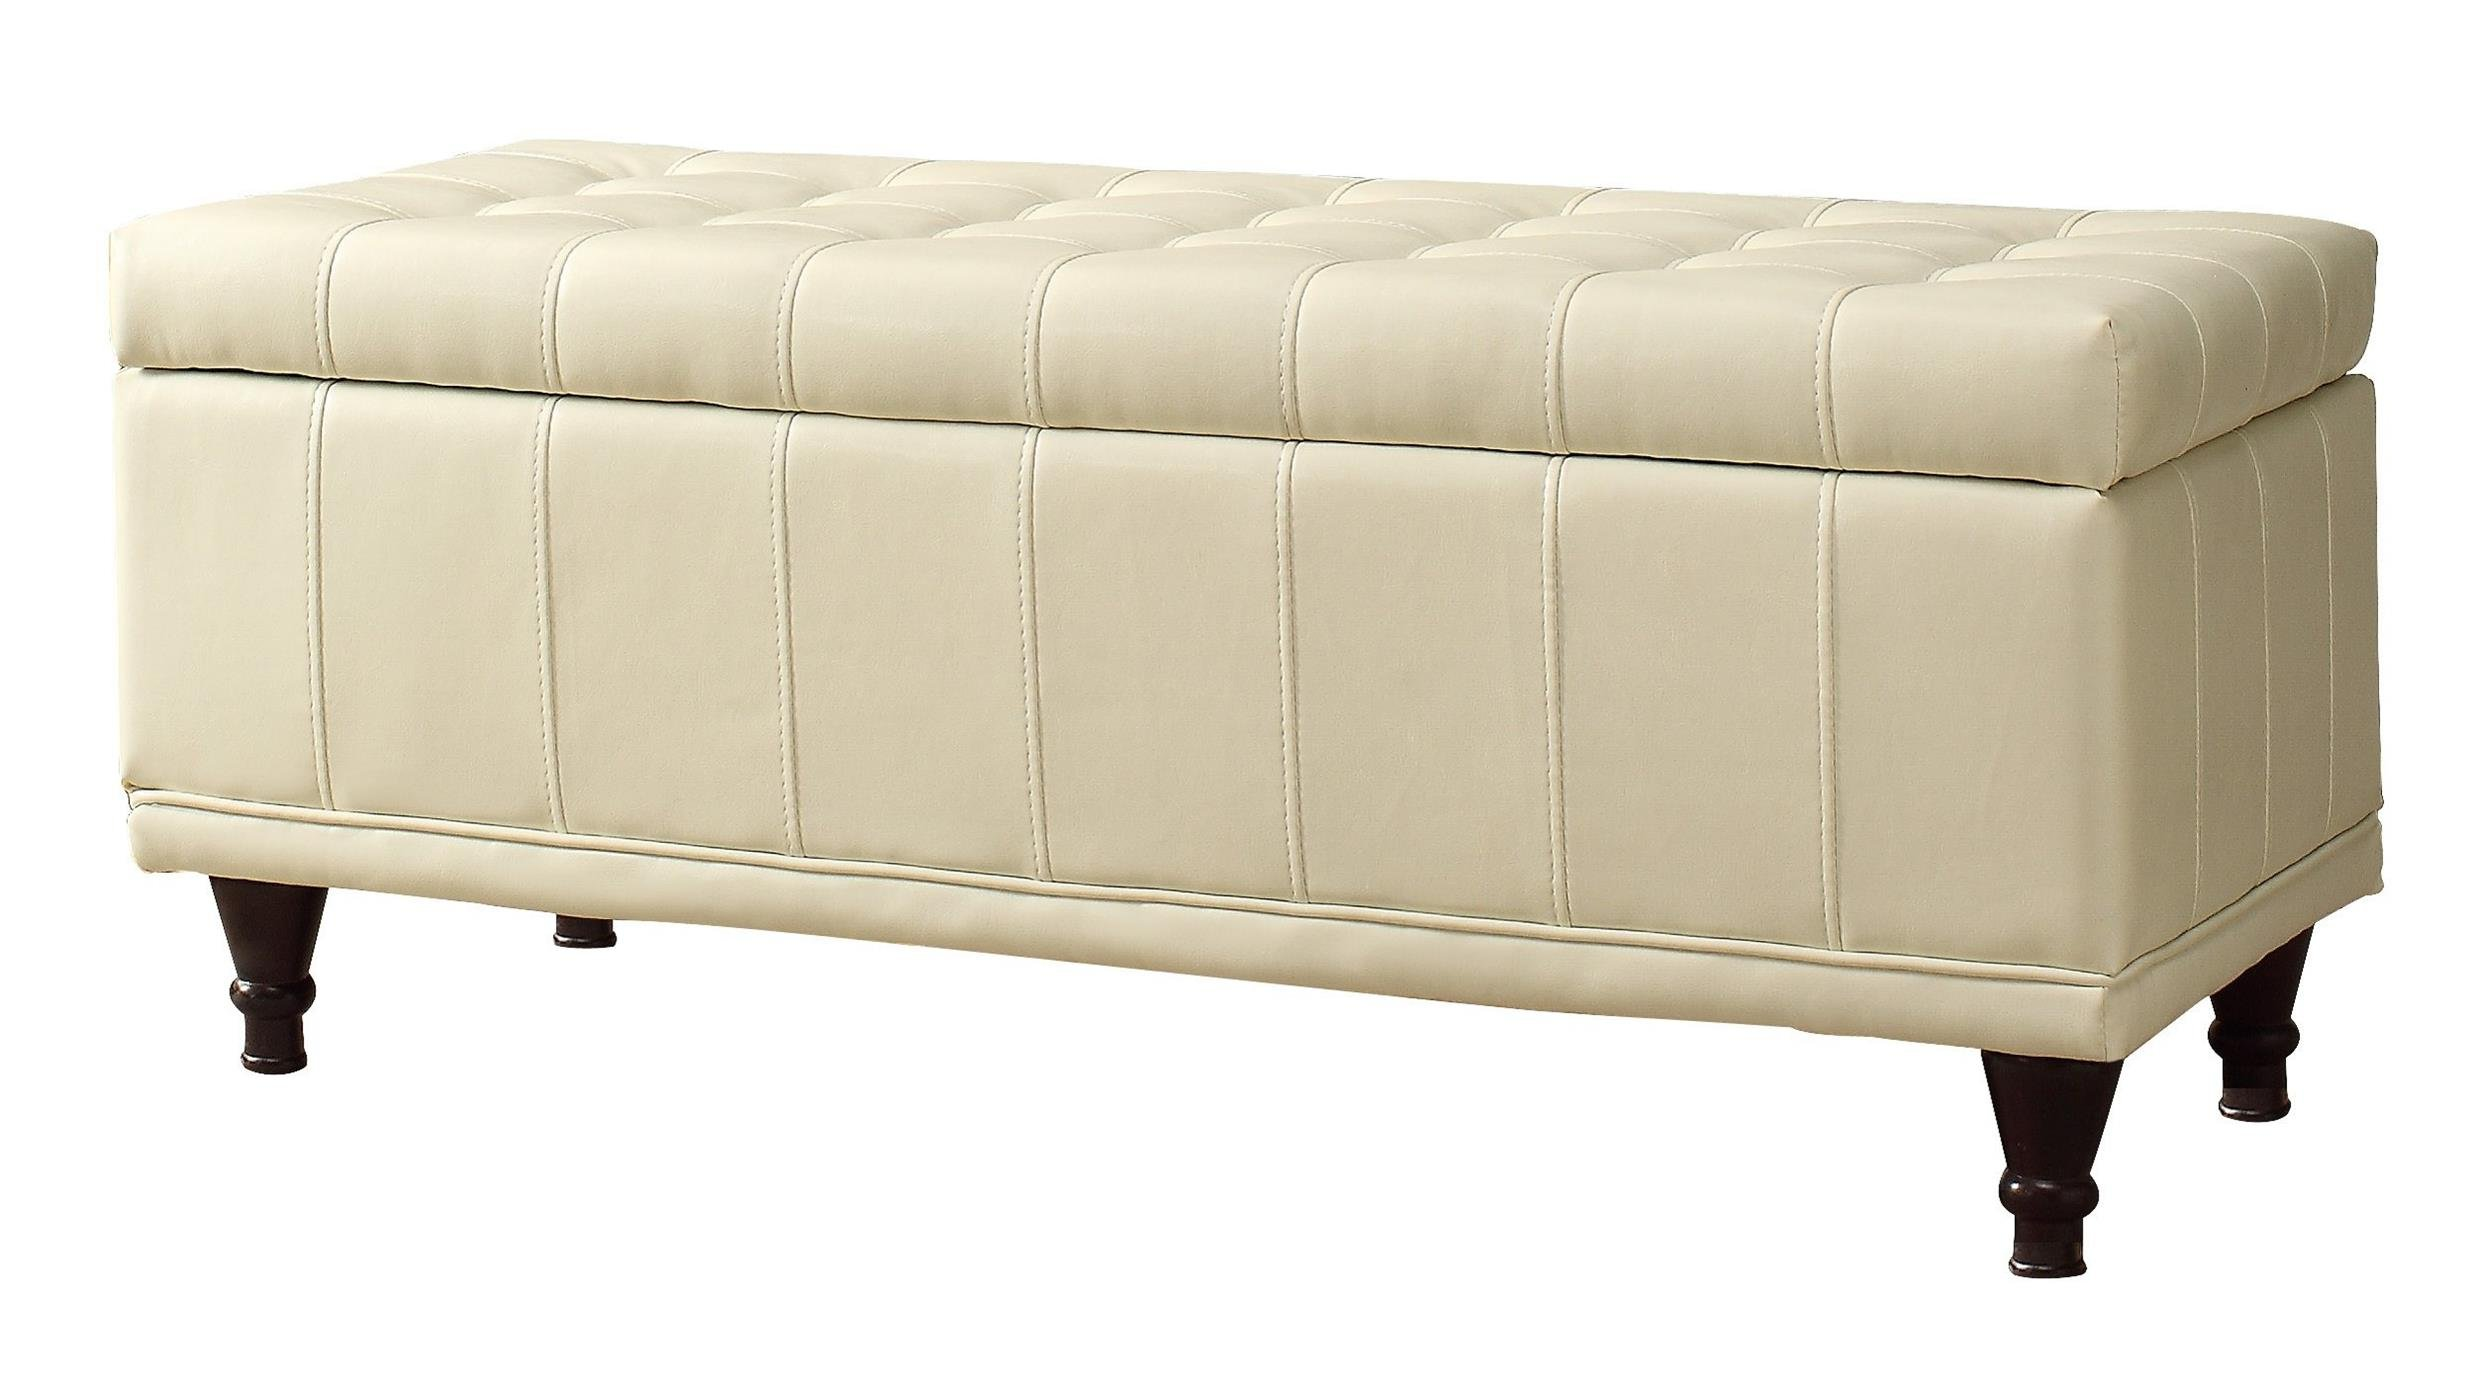 Homelegance Lift Cushioned Top Storage Bench with Tufted Accents Faux Leather, Taupe by Homelegance